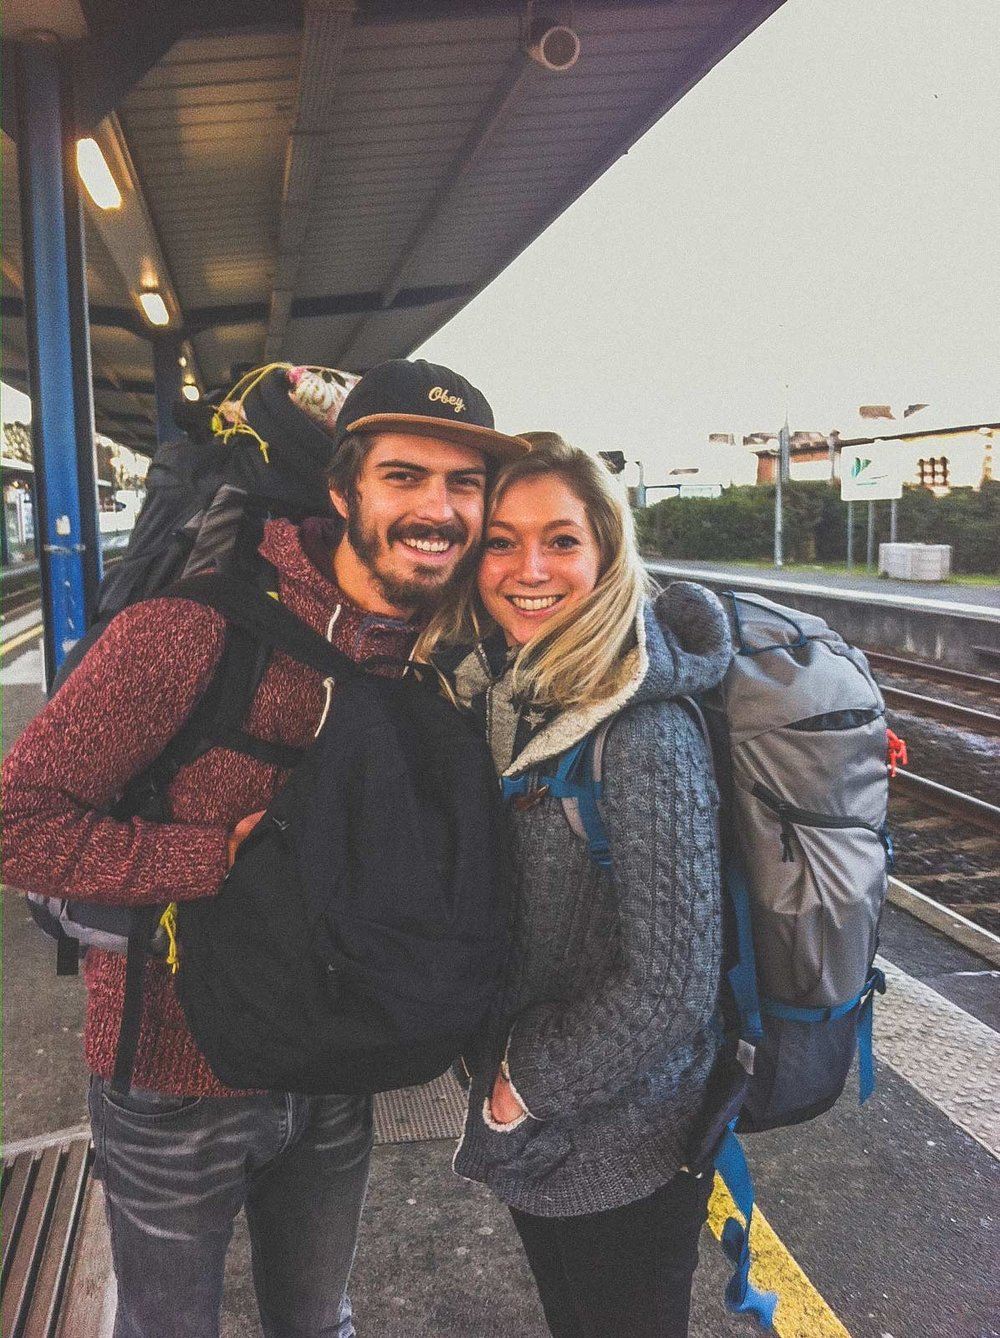 Departure for Australia with our Forclaz Quechua backpack